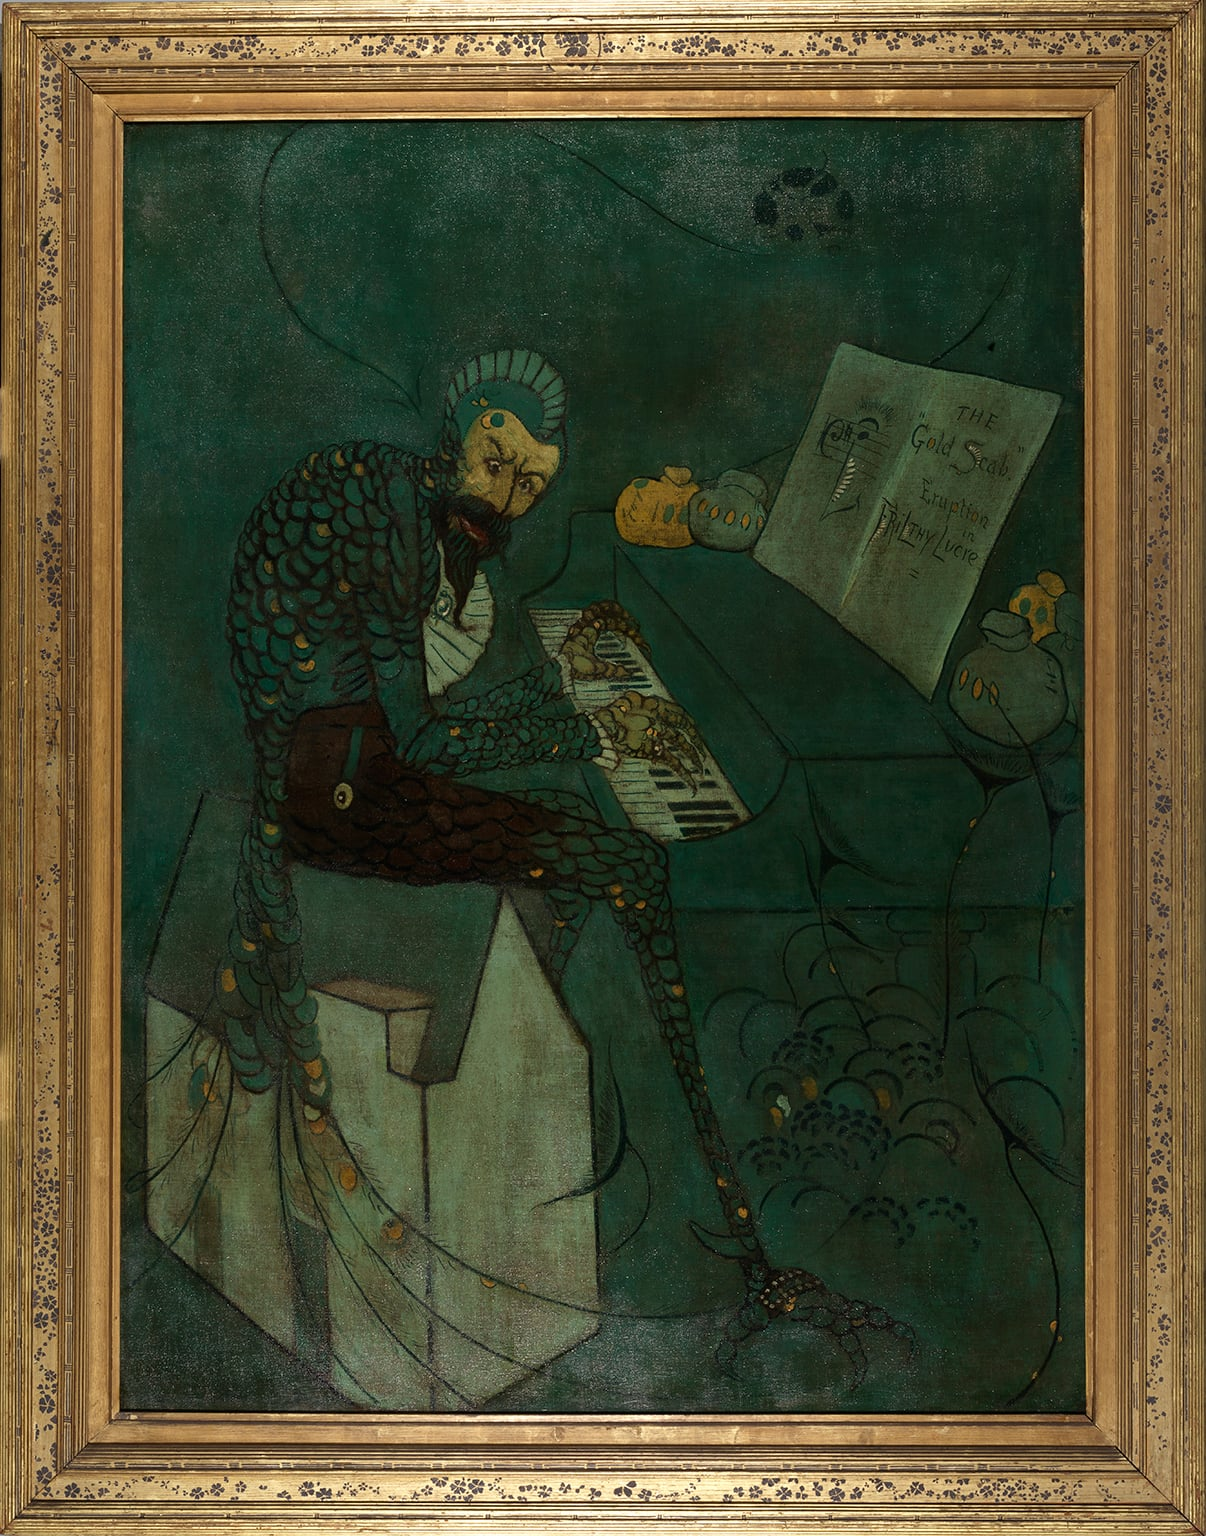 The Gold Scab by James McNeill Whistler, 1879 - Liverpool Biennial